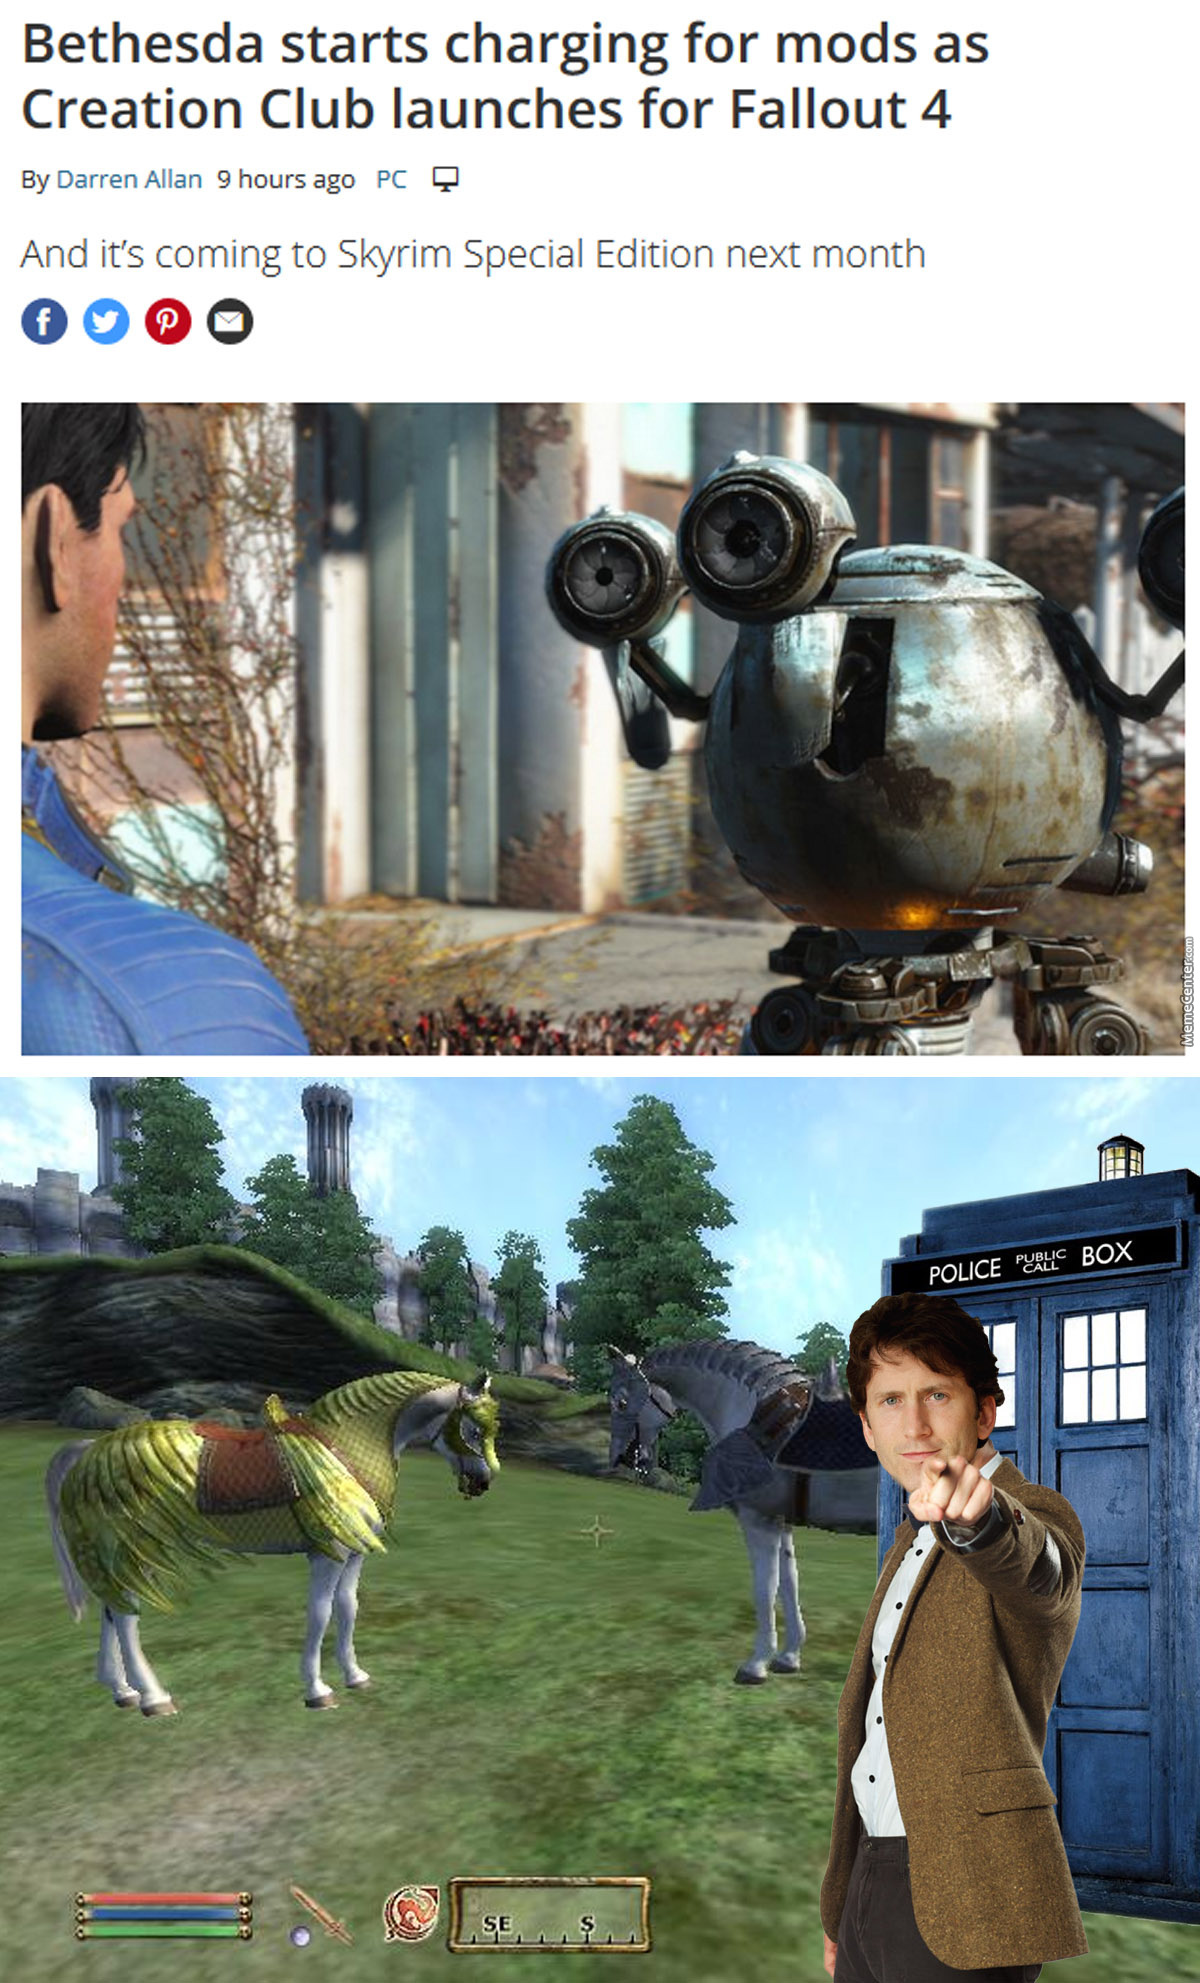 The New Doctor Is Todd!